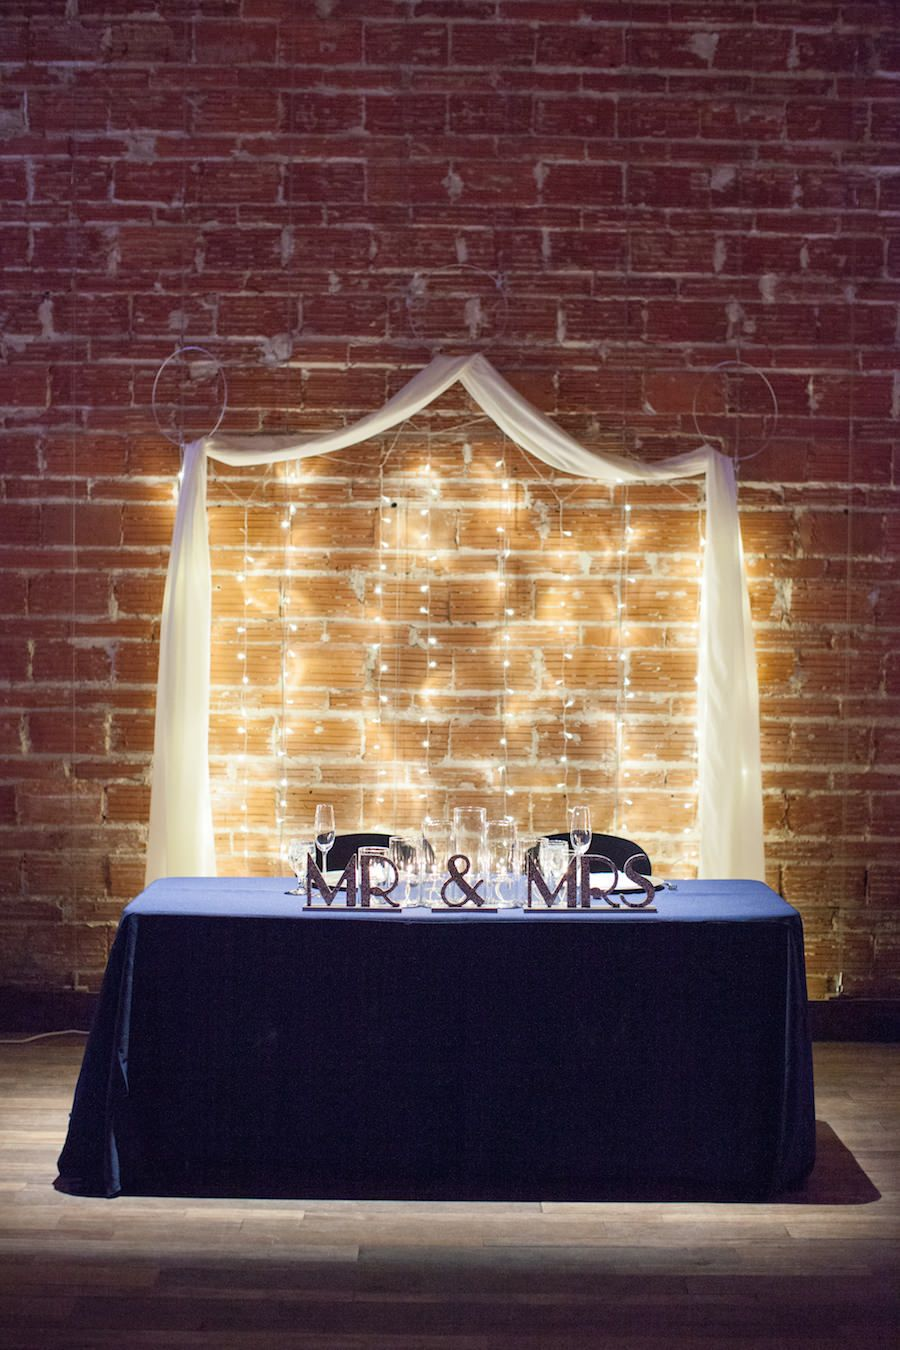 Bride and Groom Sweetheart Table with Exposed Brick Wall Backdrop at Modern, Downtown St. Pete Wedding Venue NOVA 535 for a romantic st. petersburg wedding